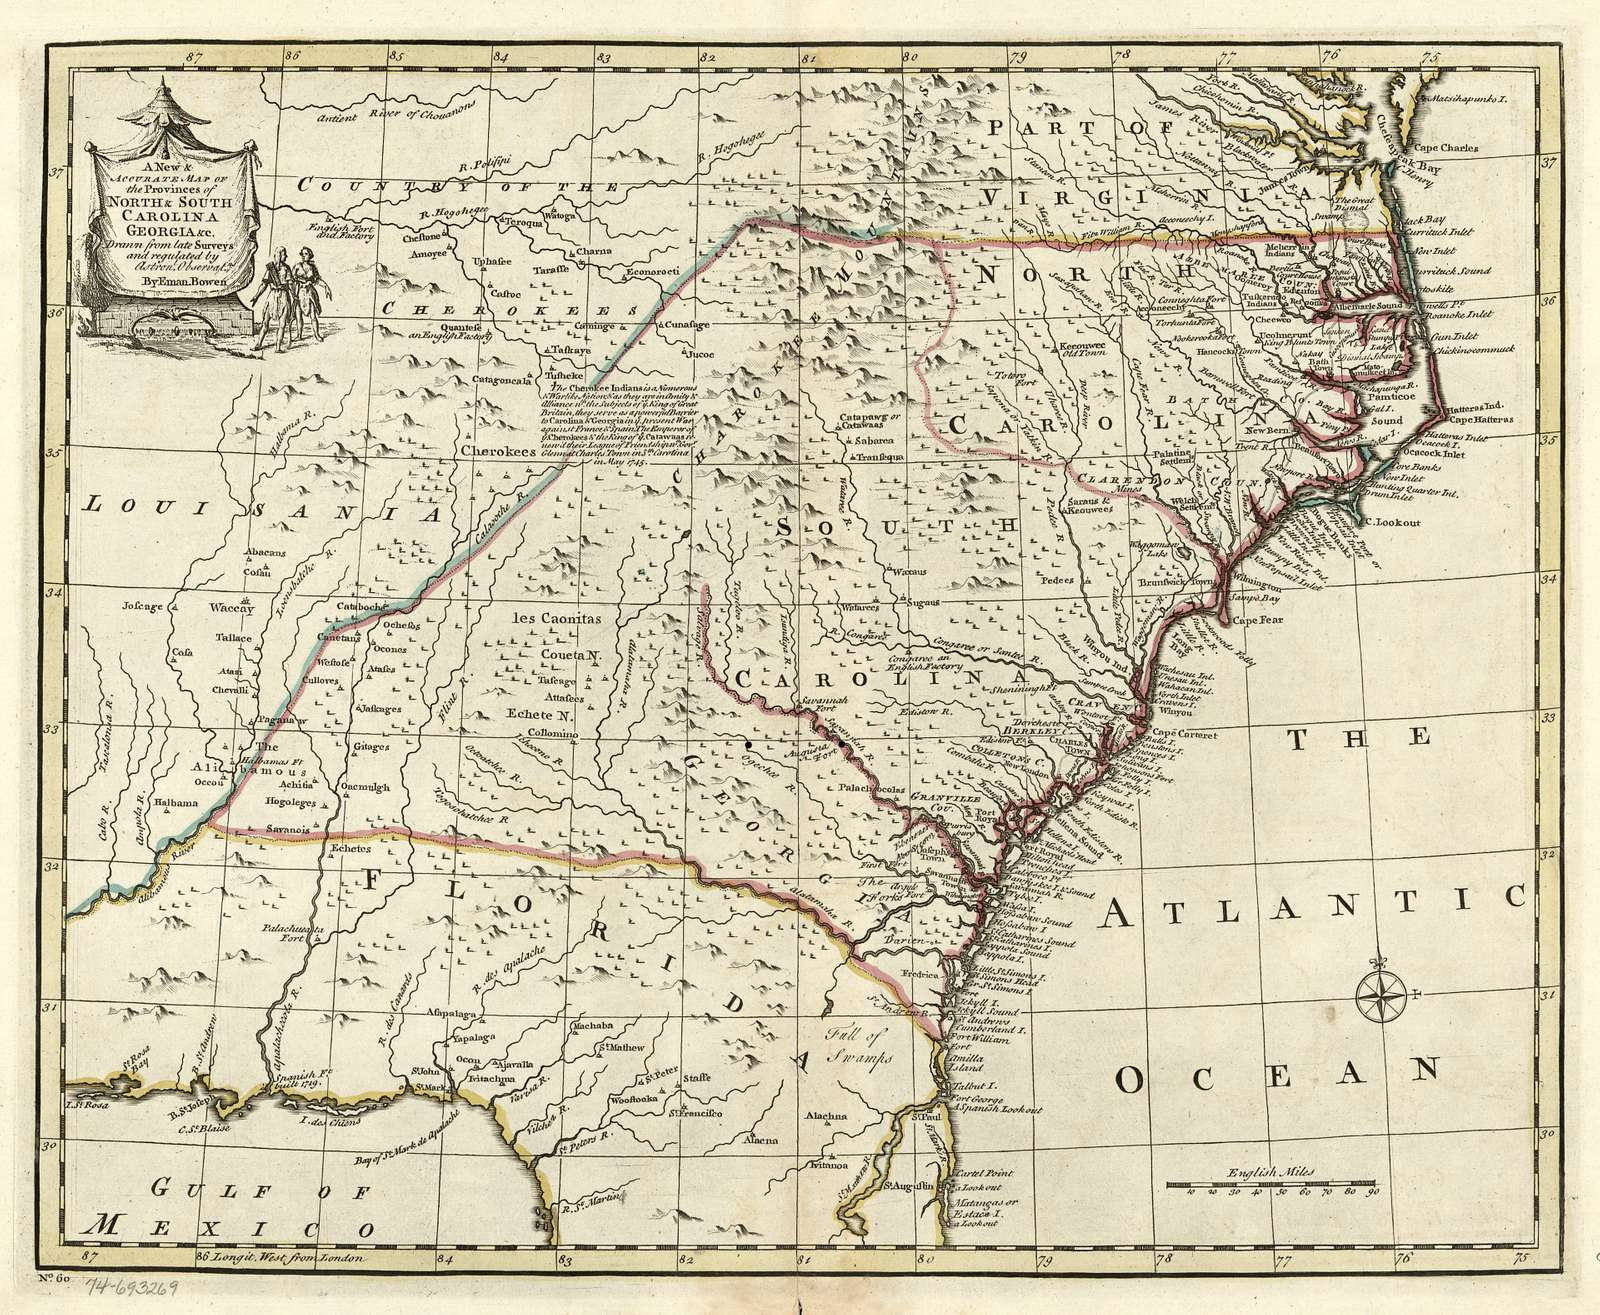 A new & accurate map of the provinces of North & South Carolina, Georgia &c.